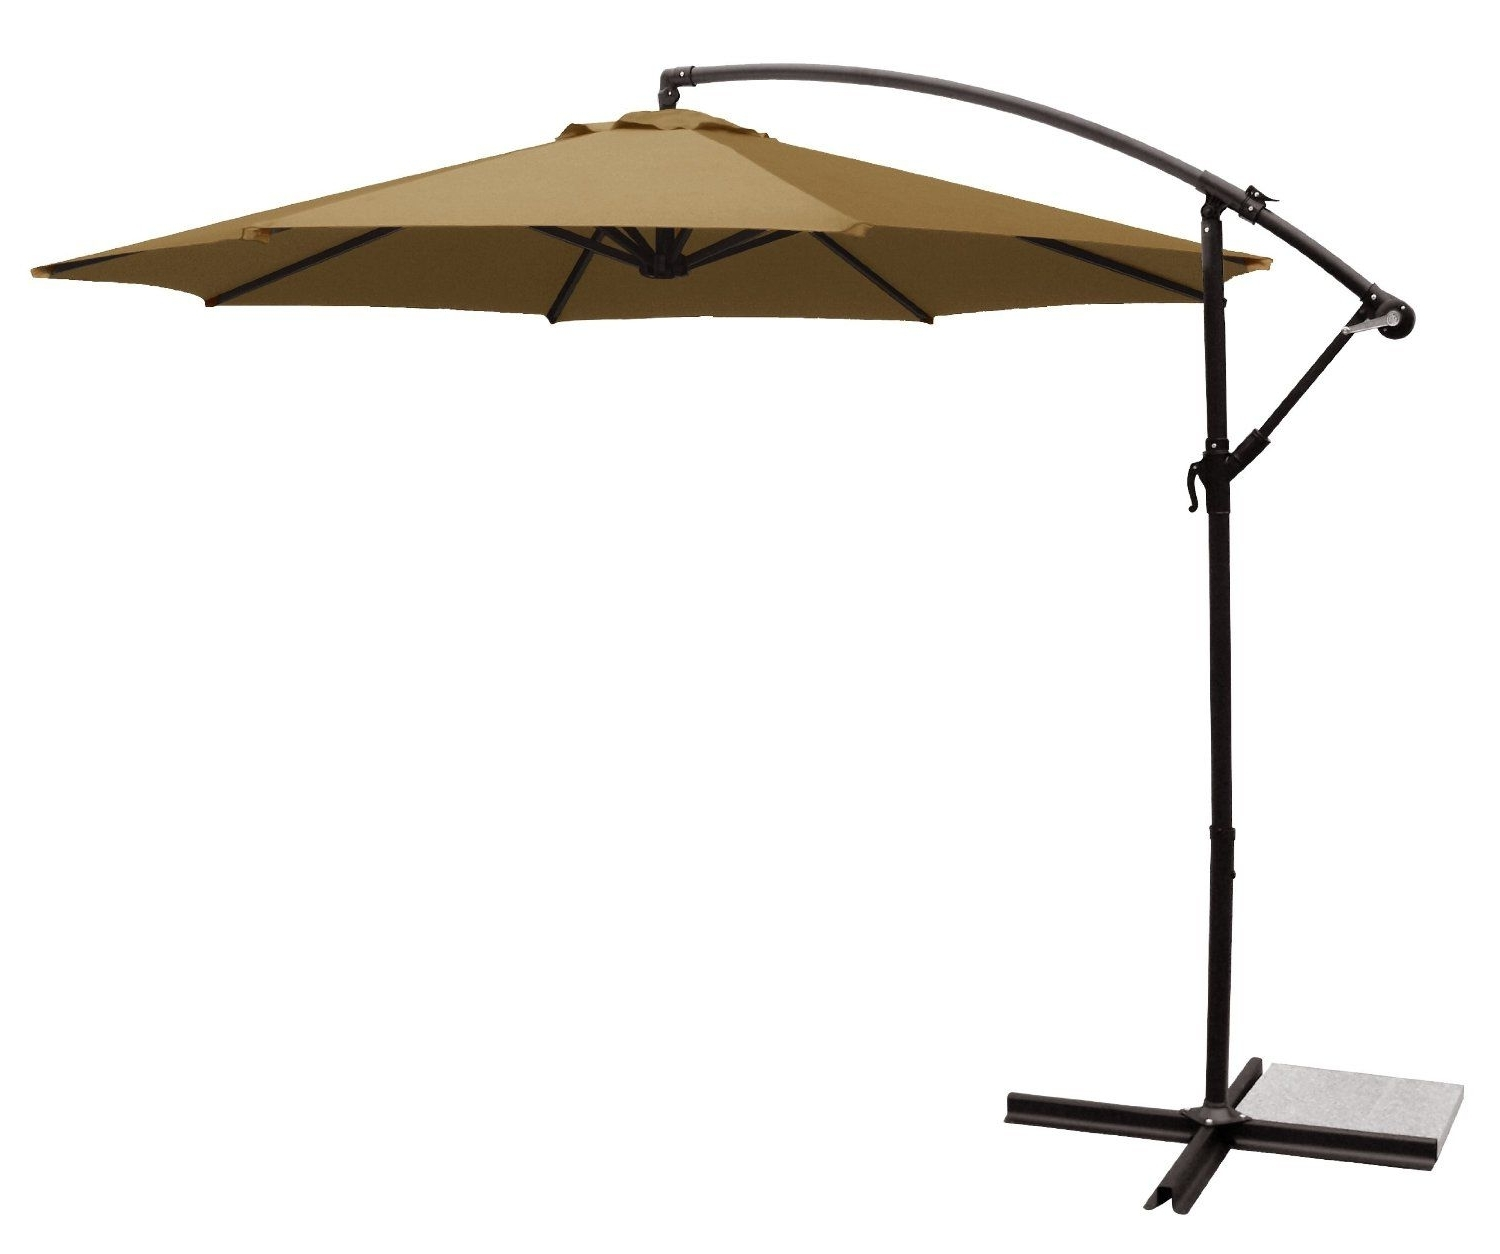 Favorite Amazon : Ace Evert Offset Umbrella 8074, 10 Ft, Polyester, Terra Inside Offset Patio Umbrellas With Base (View 16 of 20)